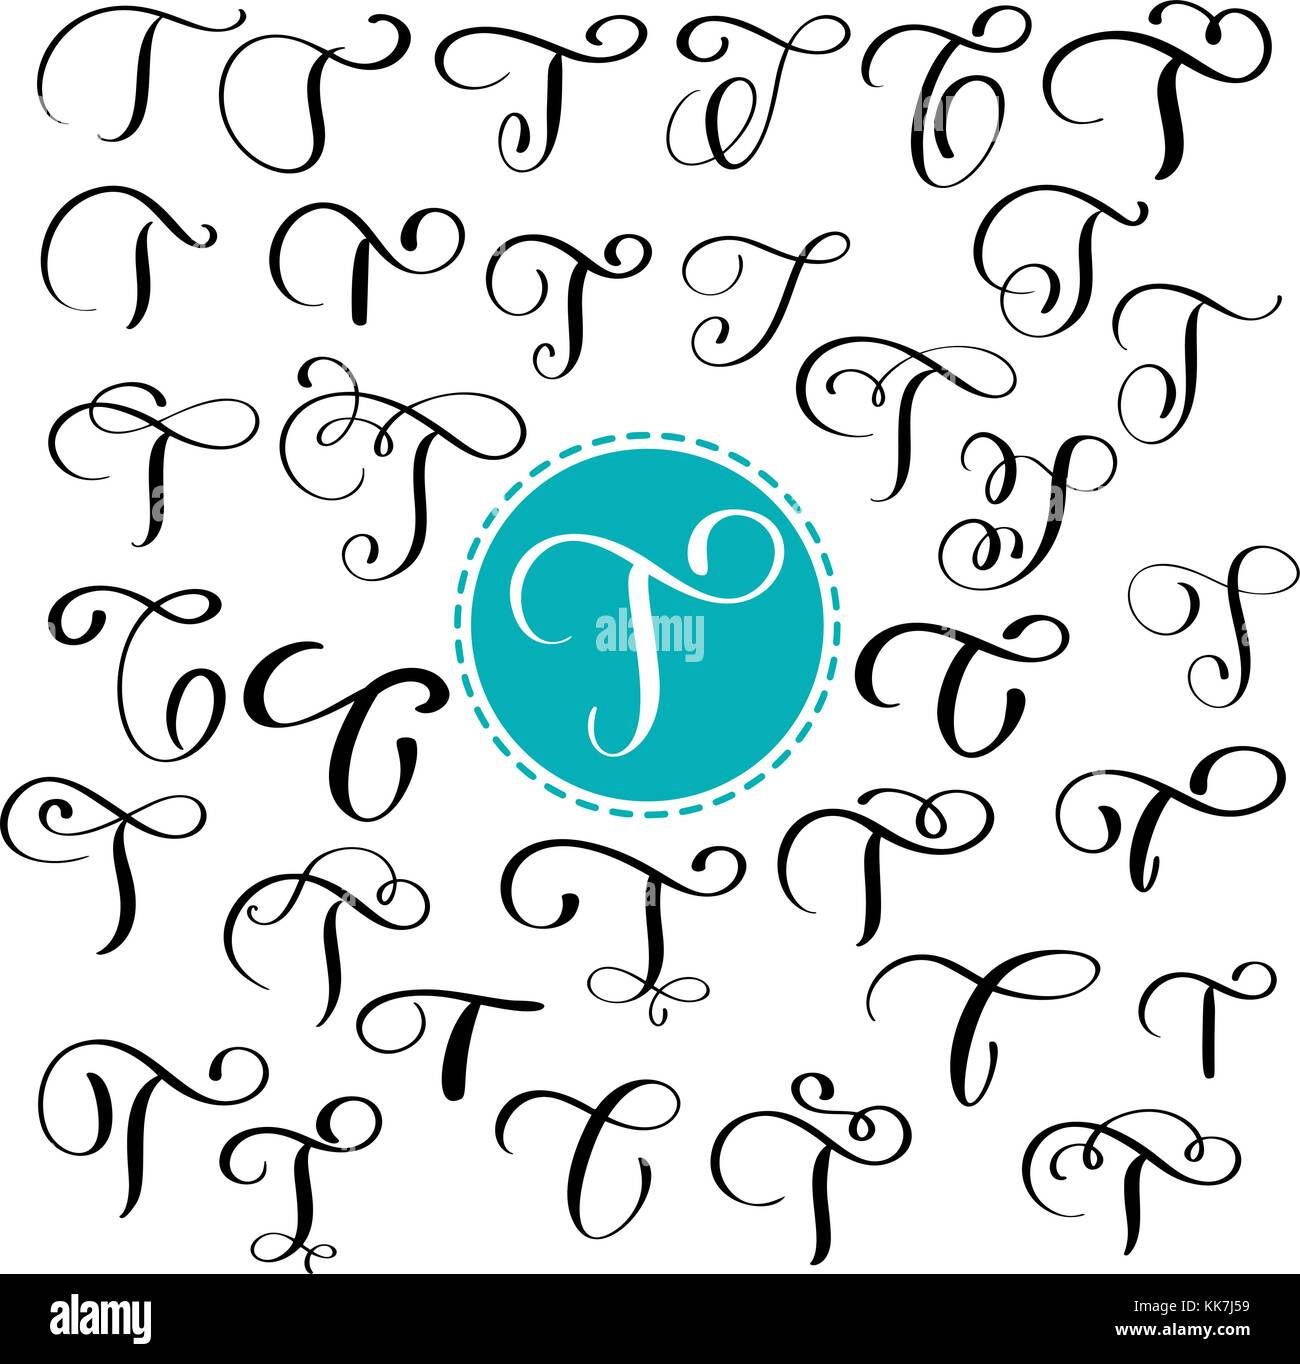 Set letter T. Hand drawn vector flourish calligraphy. Script font. Isolated letters written with ink. Handwritten - Stock Image